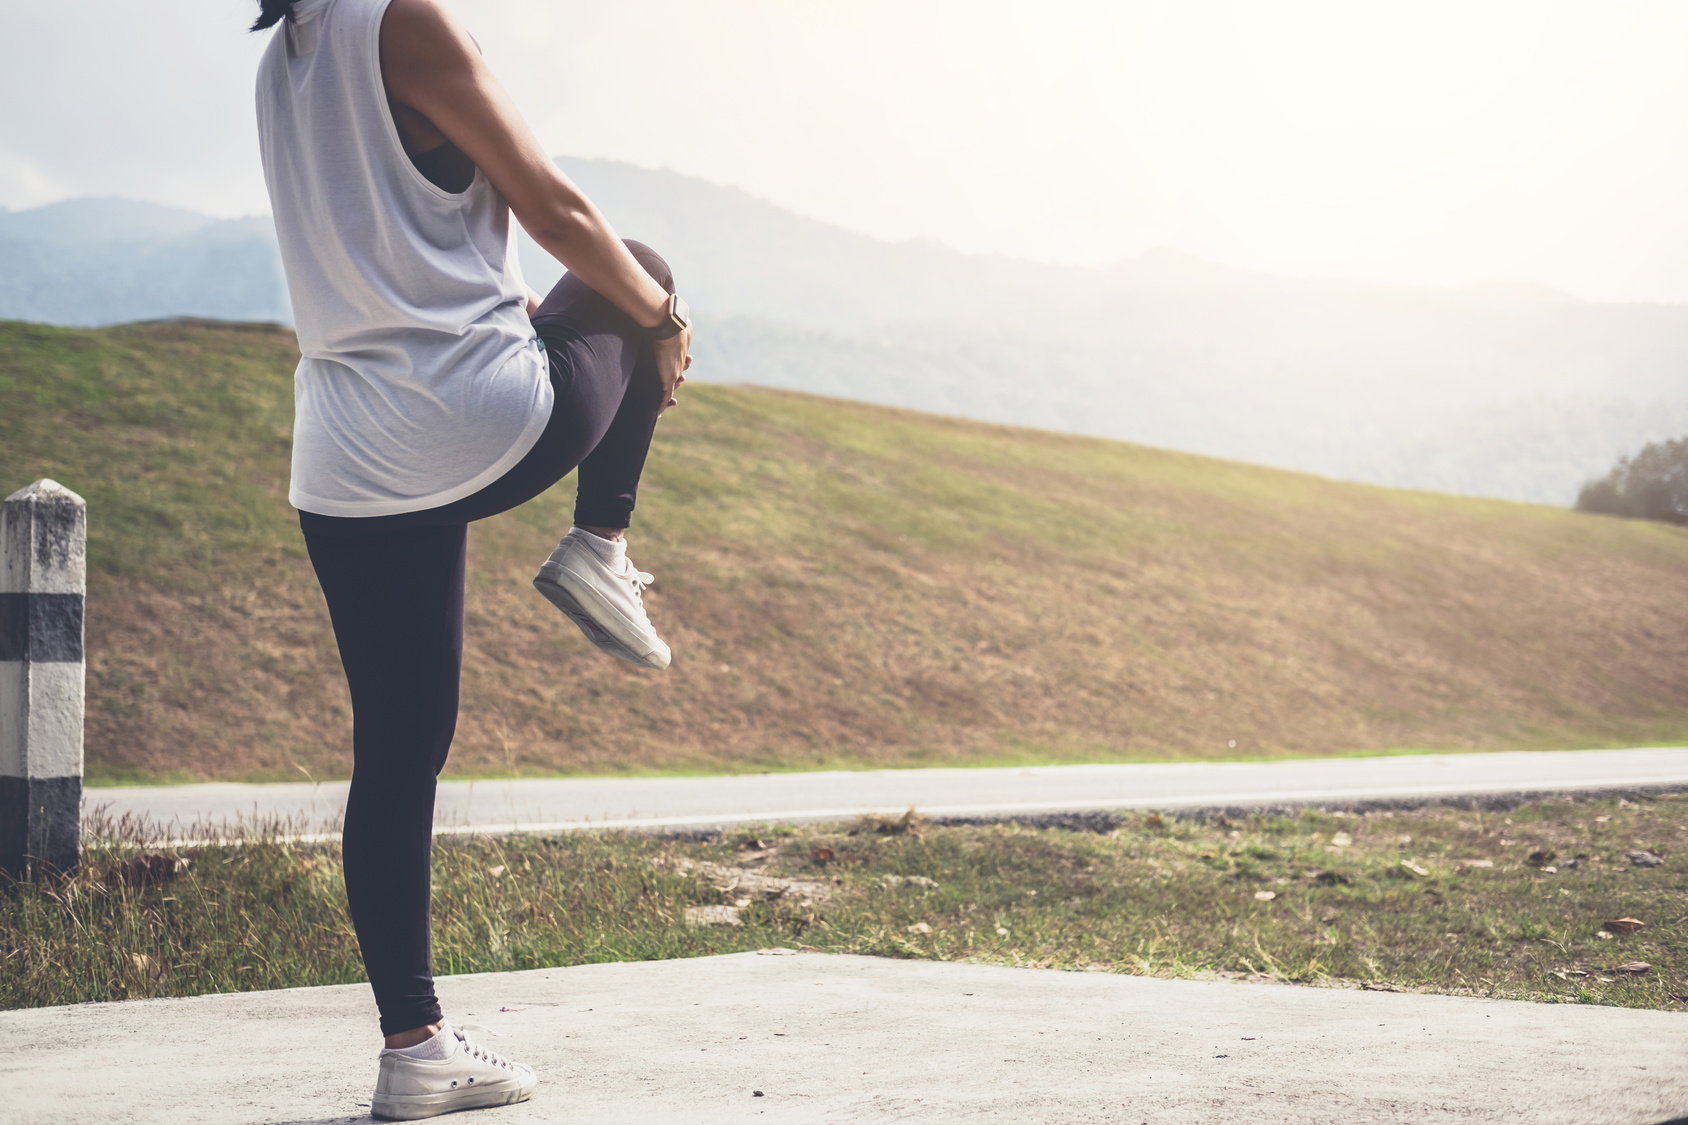 runner dealing with muscle cramp